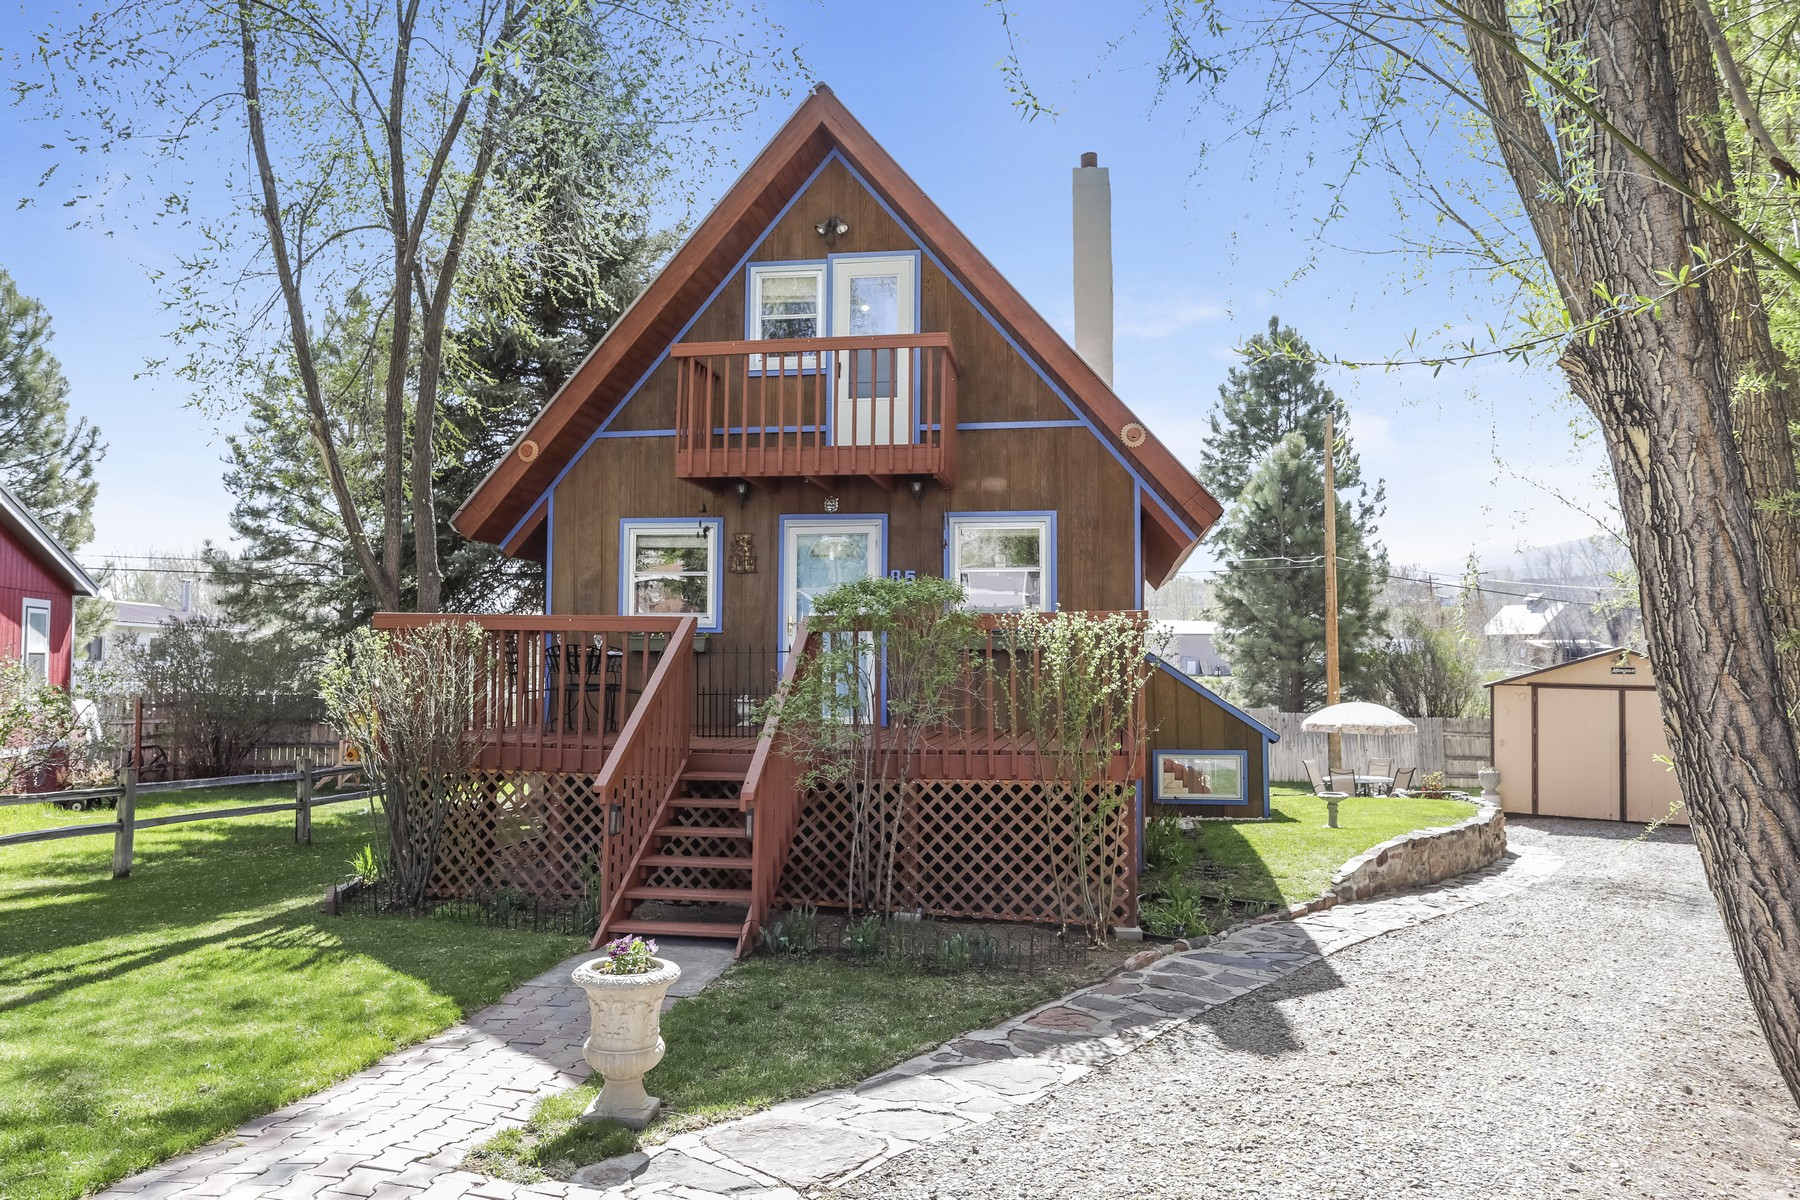 Single Family Homes for Sale at This delightful 4-bedroom single family residence 85 Rangeview Court Gypsum, Colorado 81637 United States